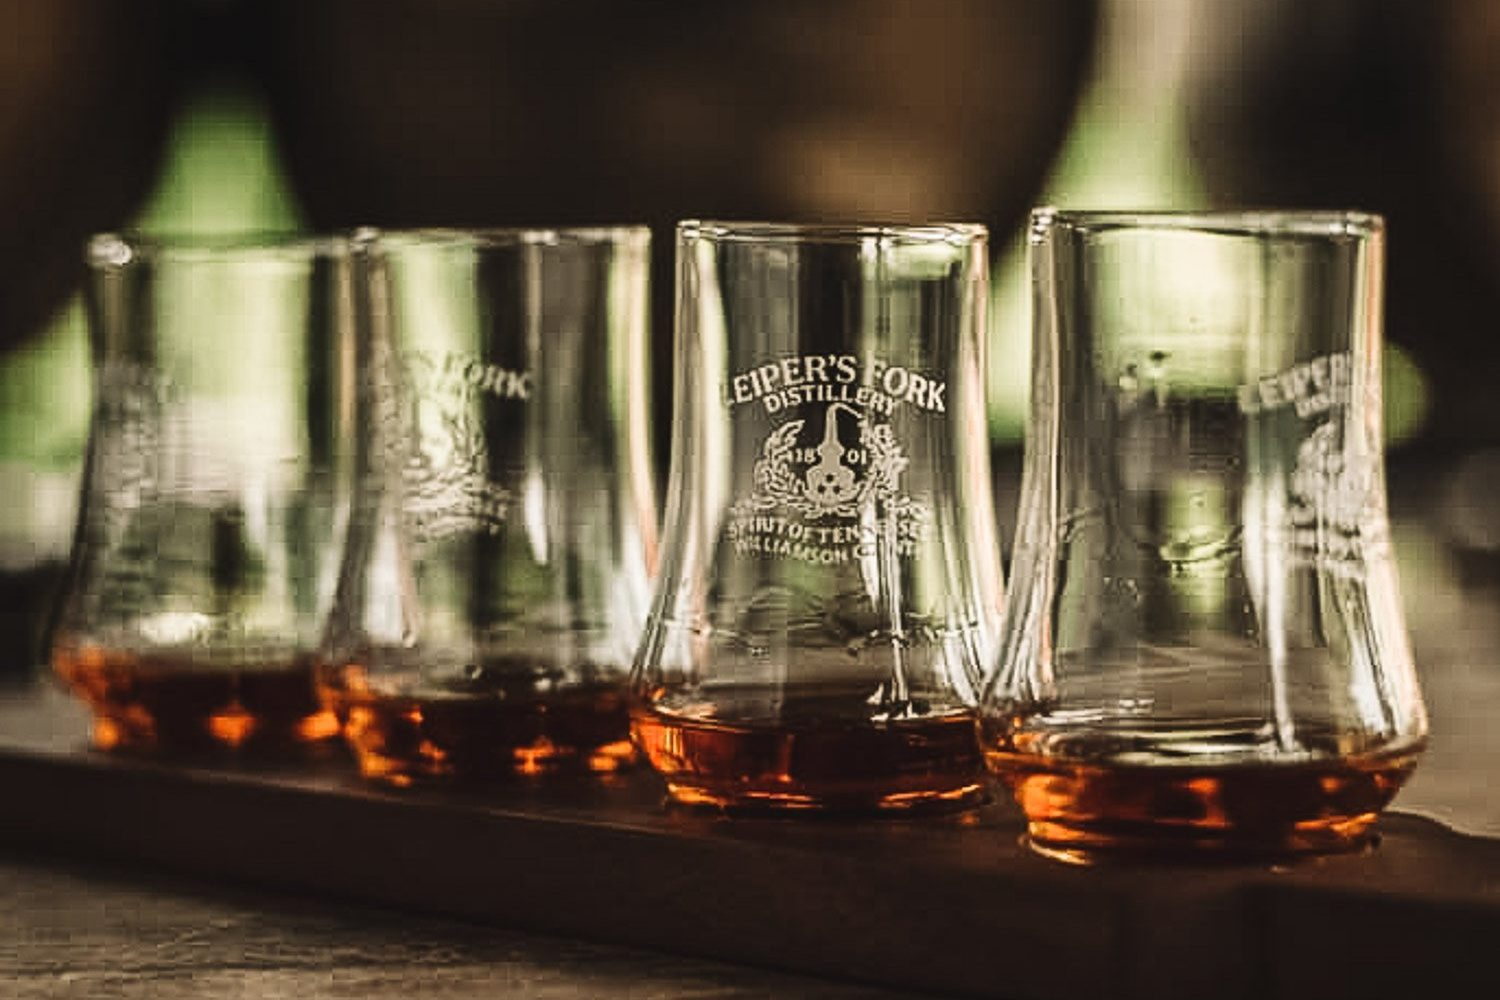 One of the fun things to do in Leiper's Fork, Tennessee is visit the Leiper's Fork Distillery. Here are four glasses filled with some whiskey.